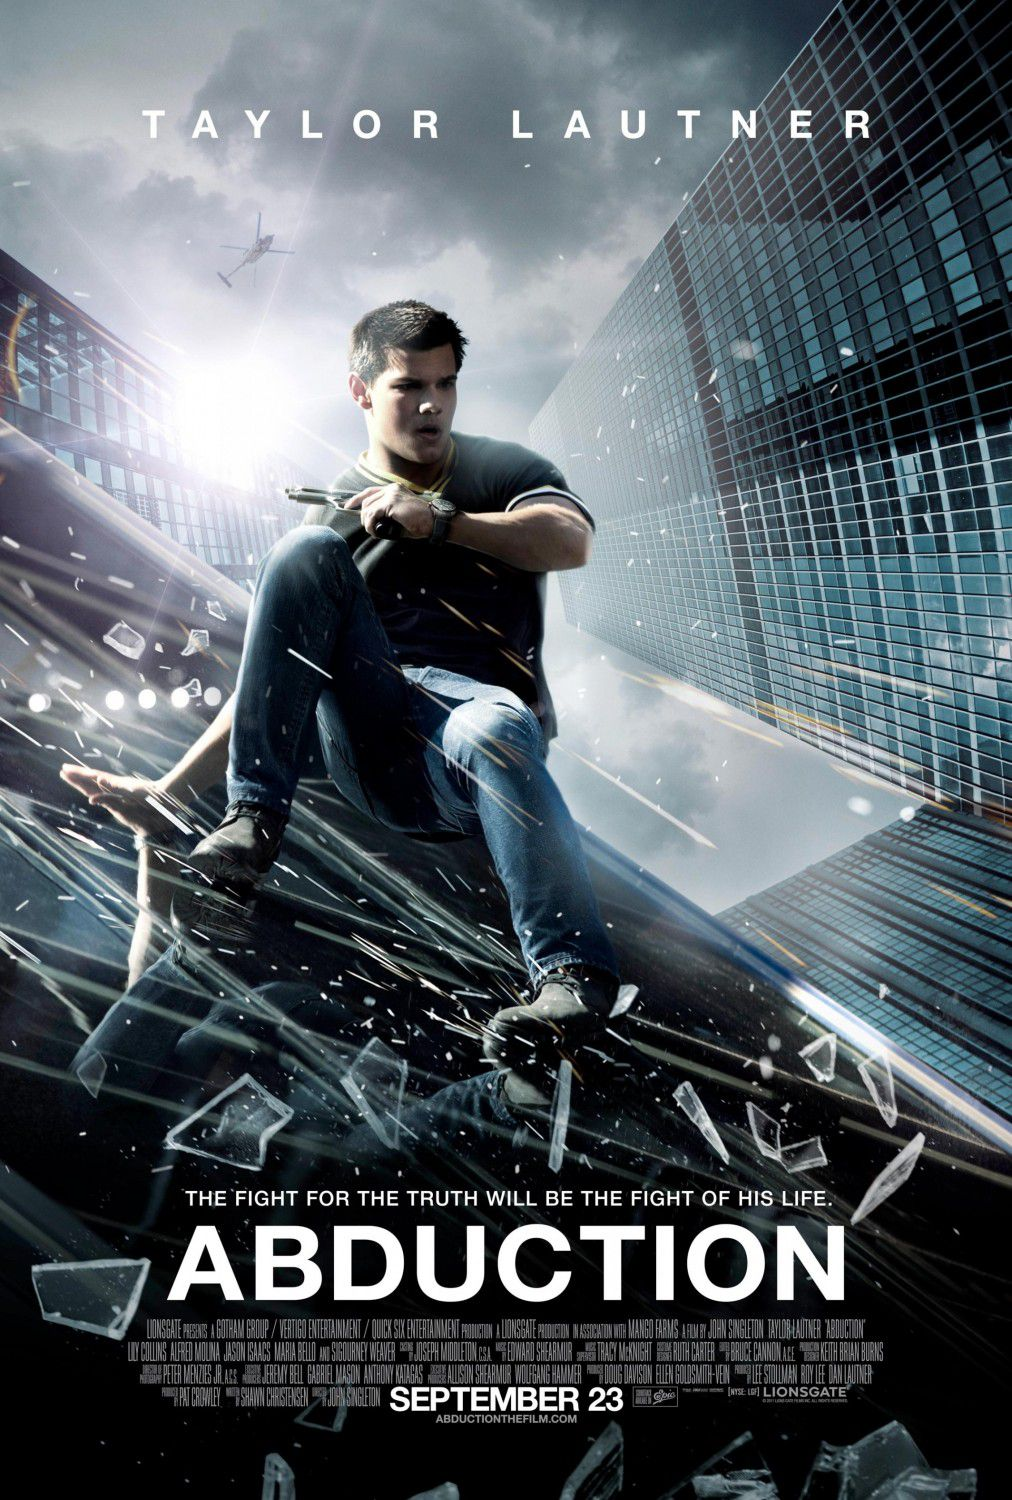 Abduction (2011) - Cast: Taylor Lautner, Lily Collins, Alfred Molina, Jason Isaacs - film poster